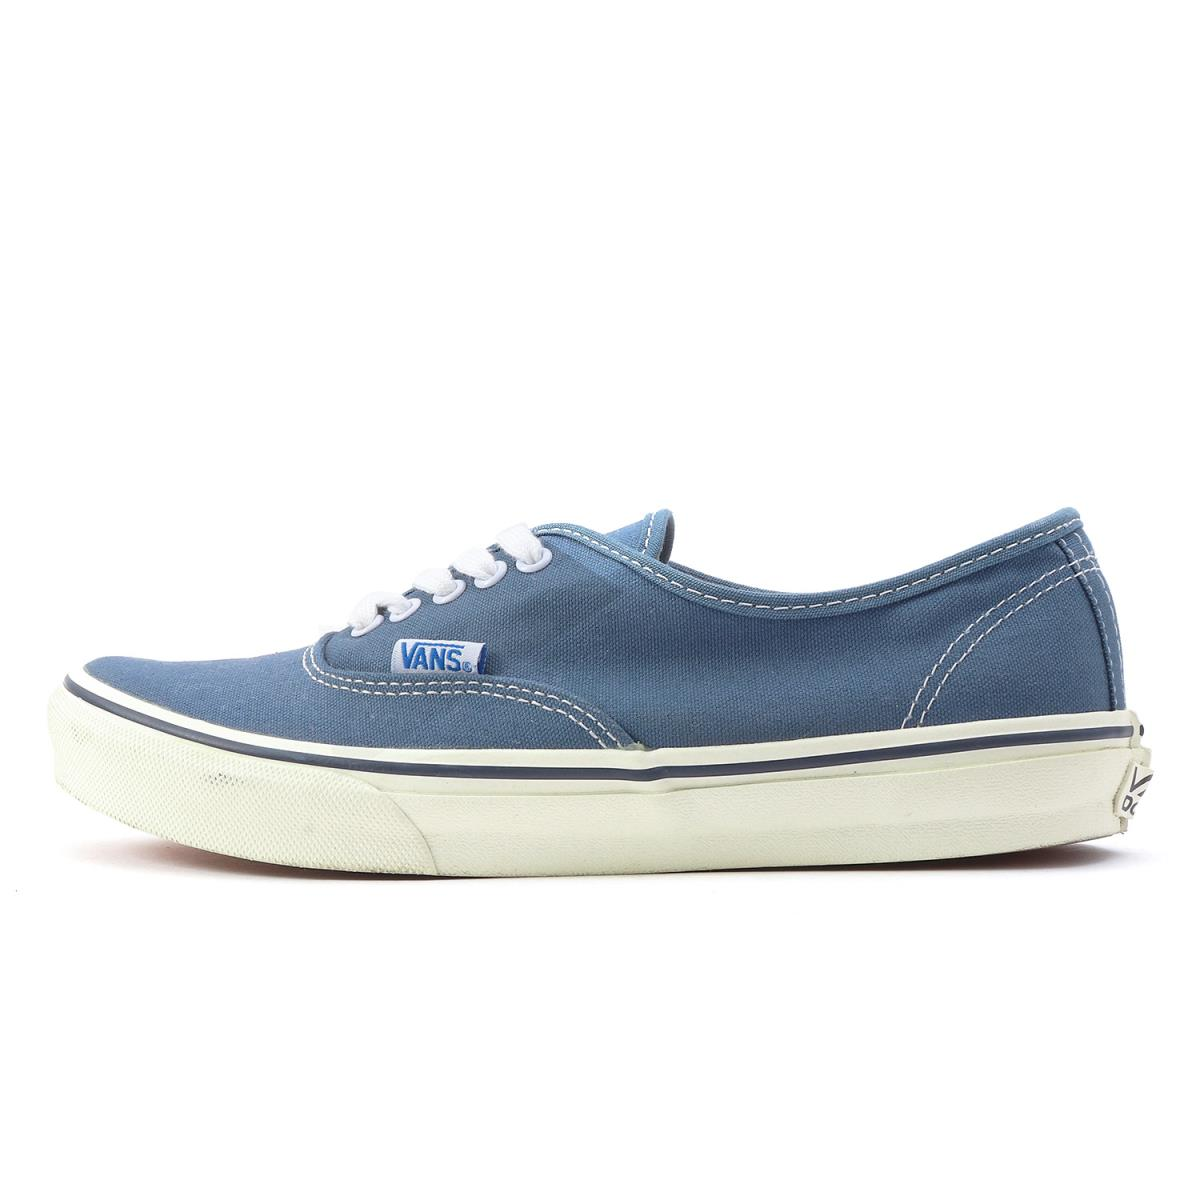 VANS (vans) X BEAMS VAN DOREN AUTHENTIC navy US8(26cm)